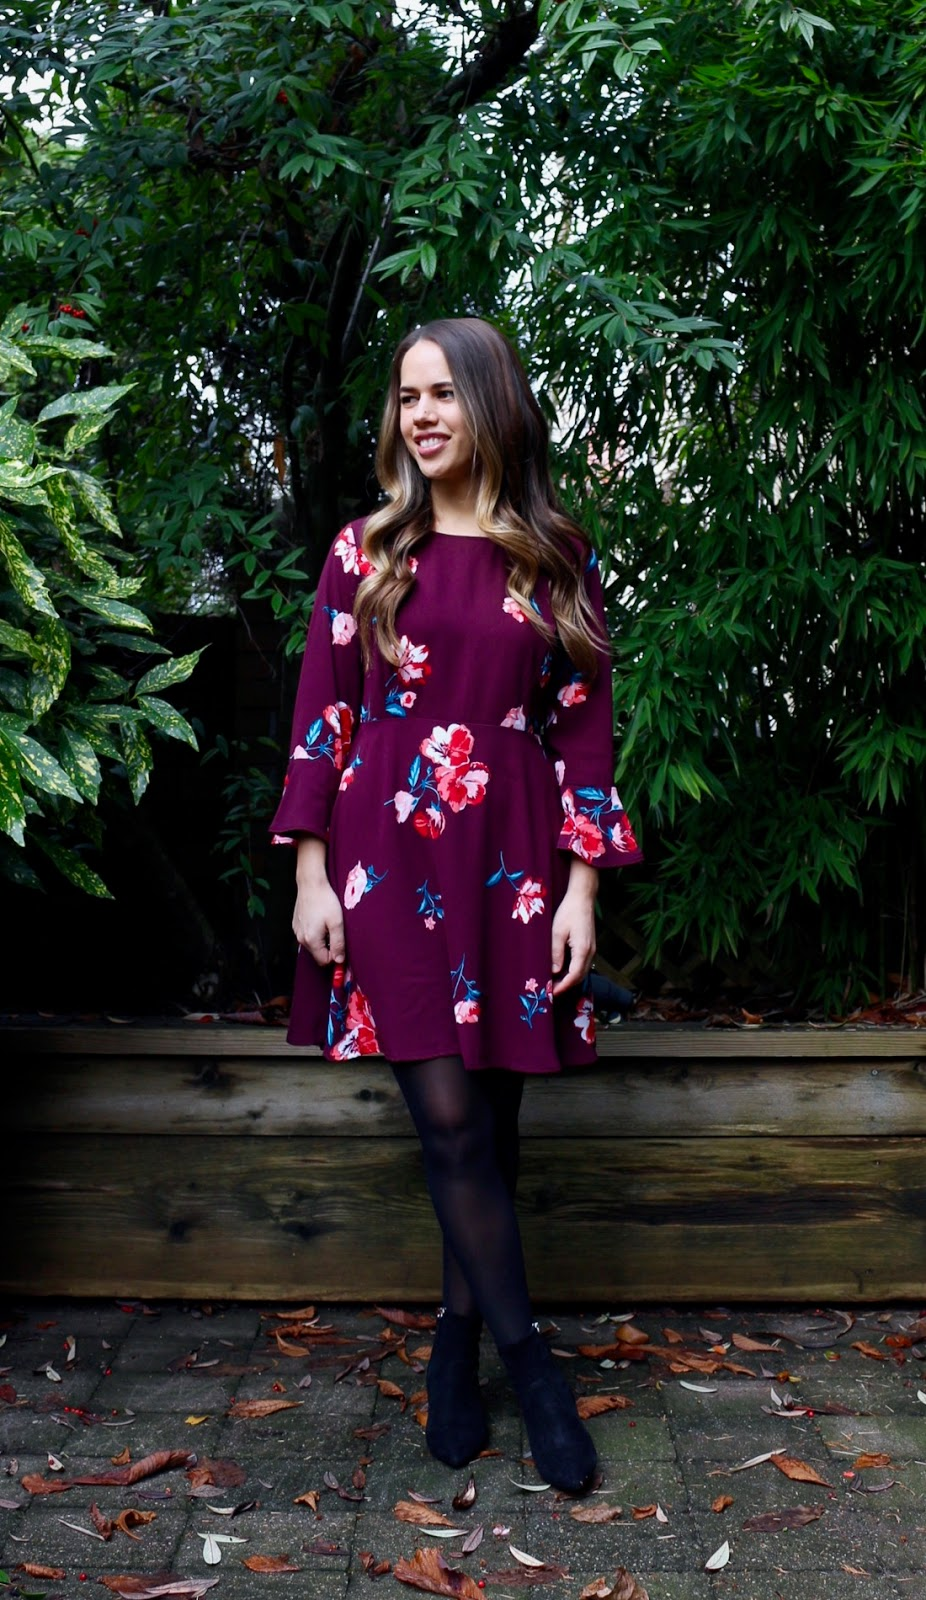 Jules in Flats - Old Navy Fit and Flare Flute Sleeve Crepe Dress (Business Casual Winter Workwear on a Budget)